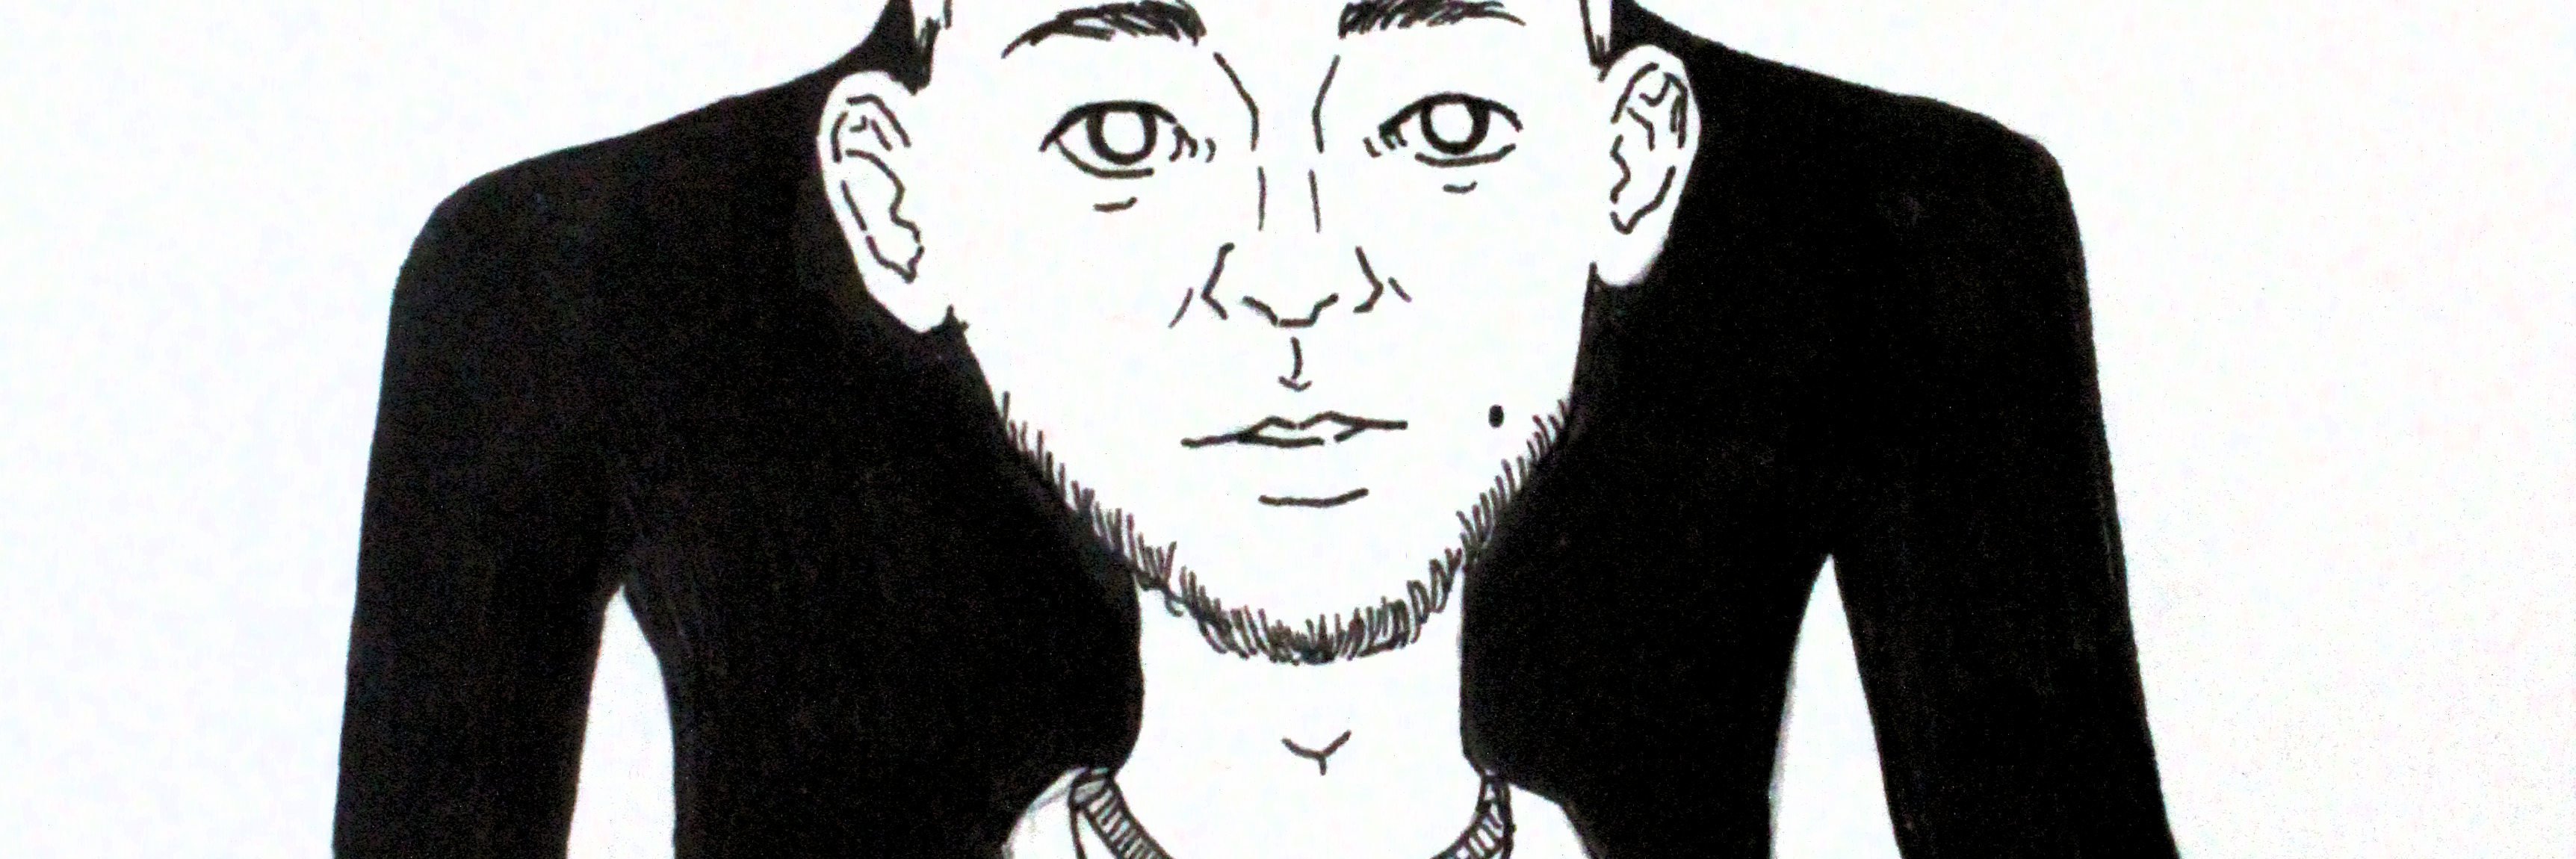 illustration of man with dark shadow lurking behind credit to janis mcmath